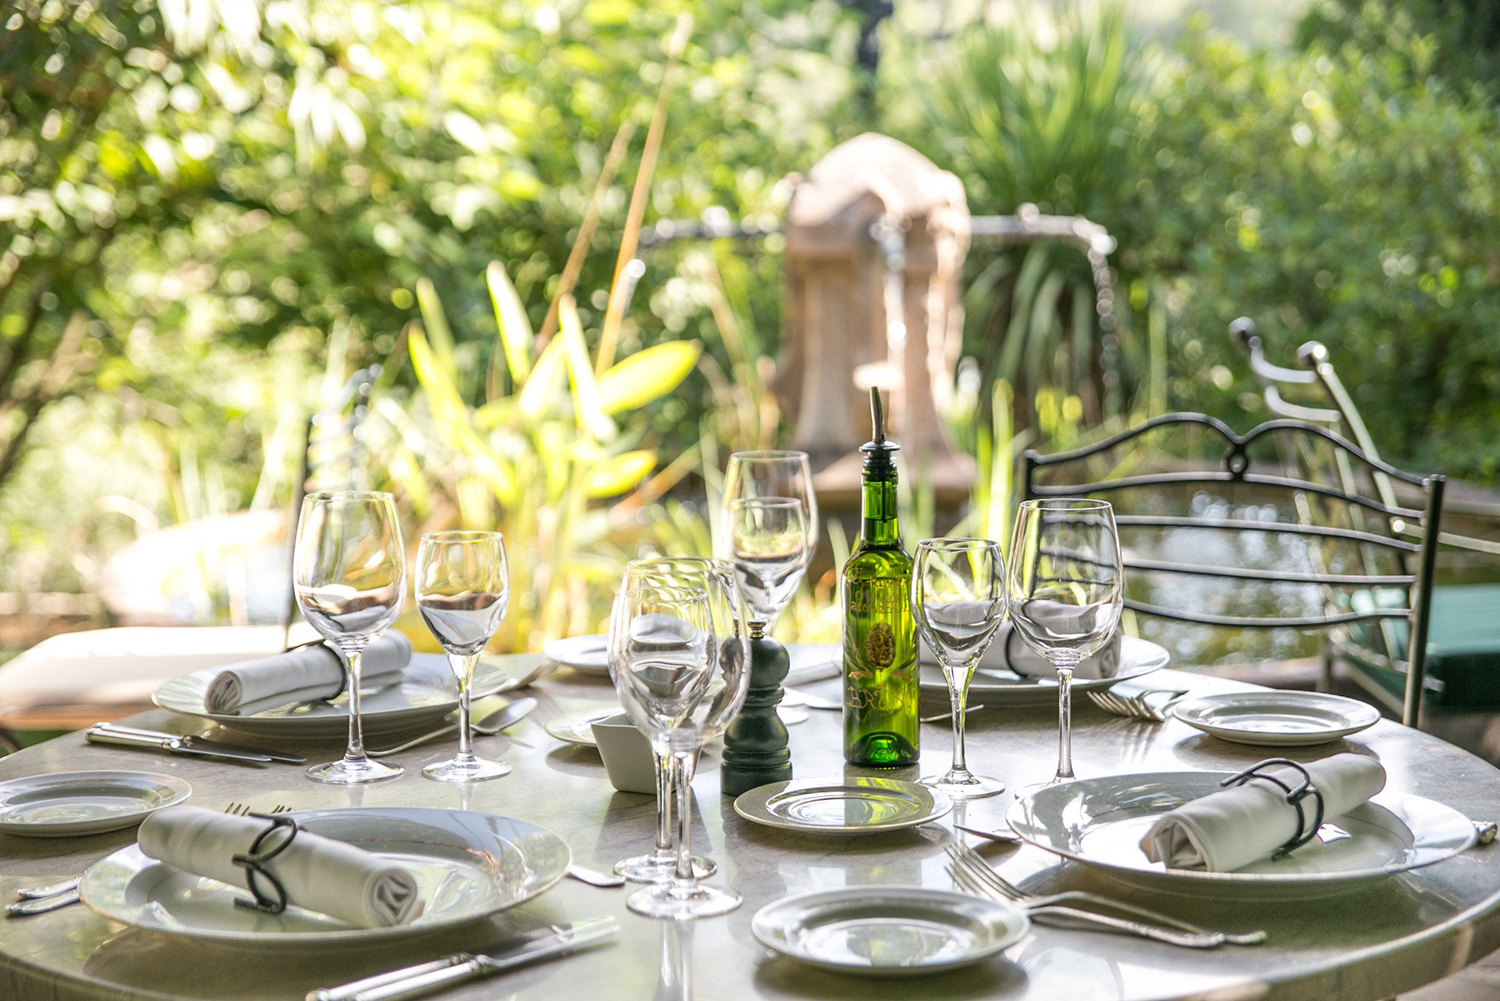 Lunch in a green setting at Chez Bruno, Lorgues